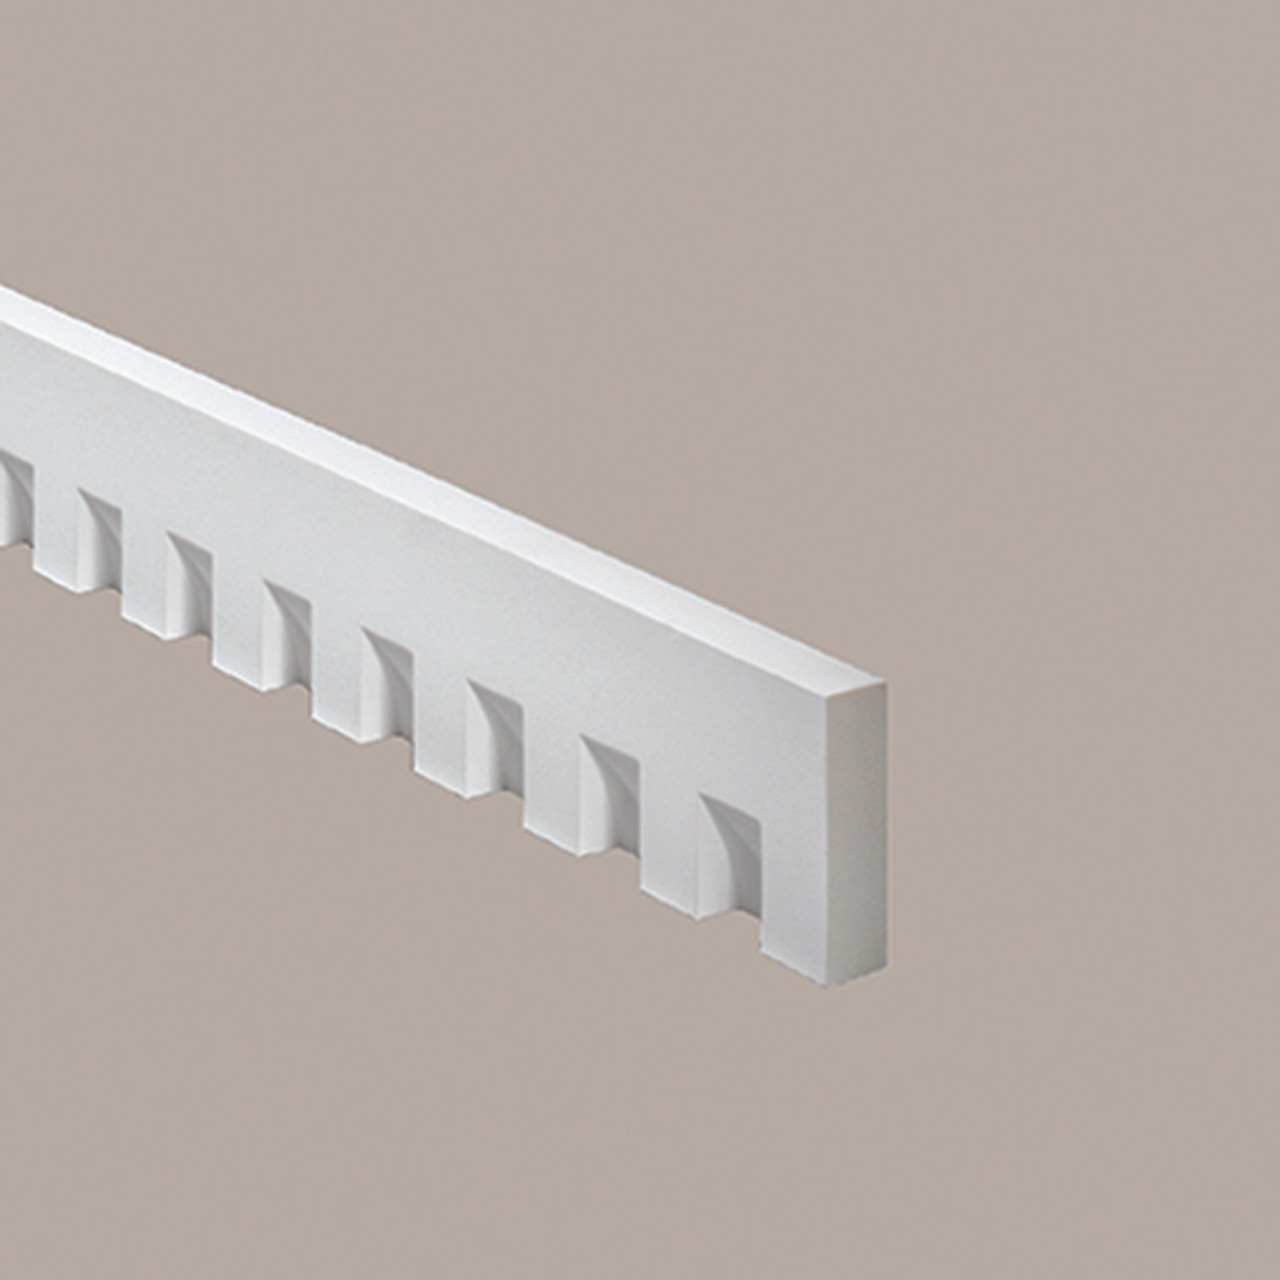 Mld310 16 for Fypon quick rail